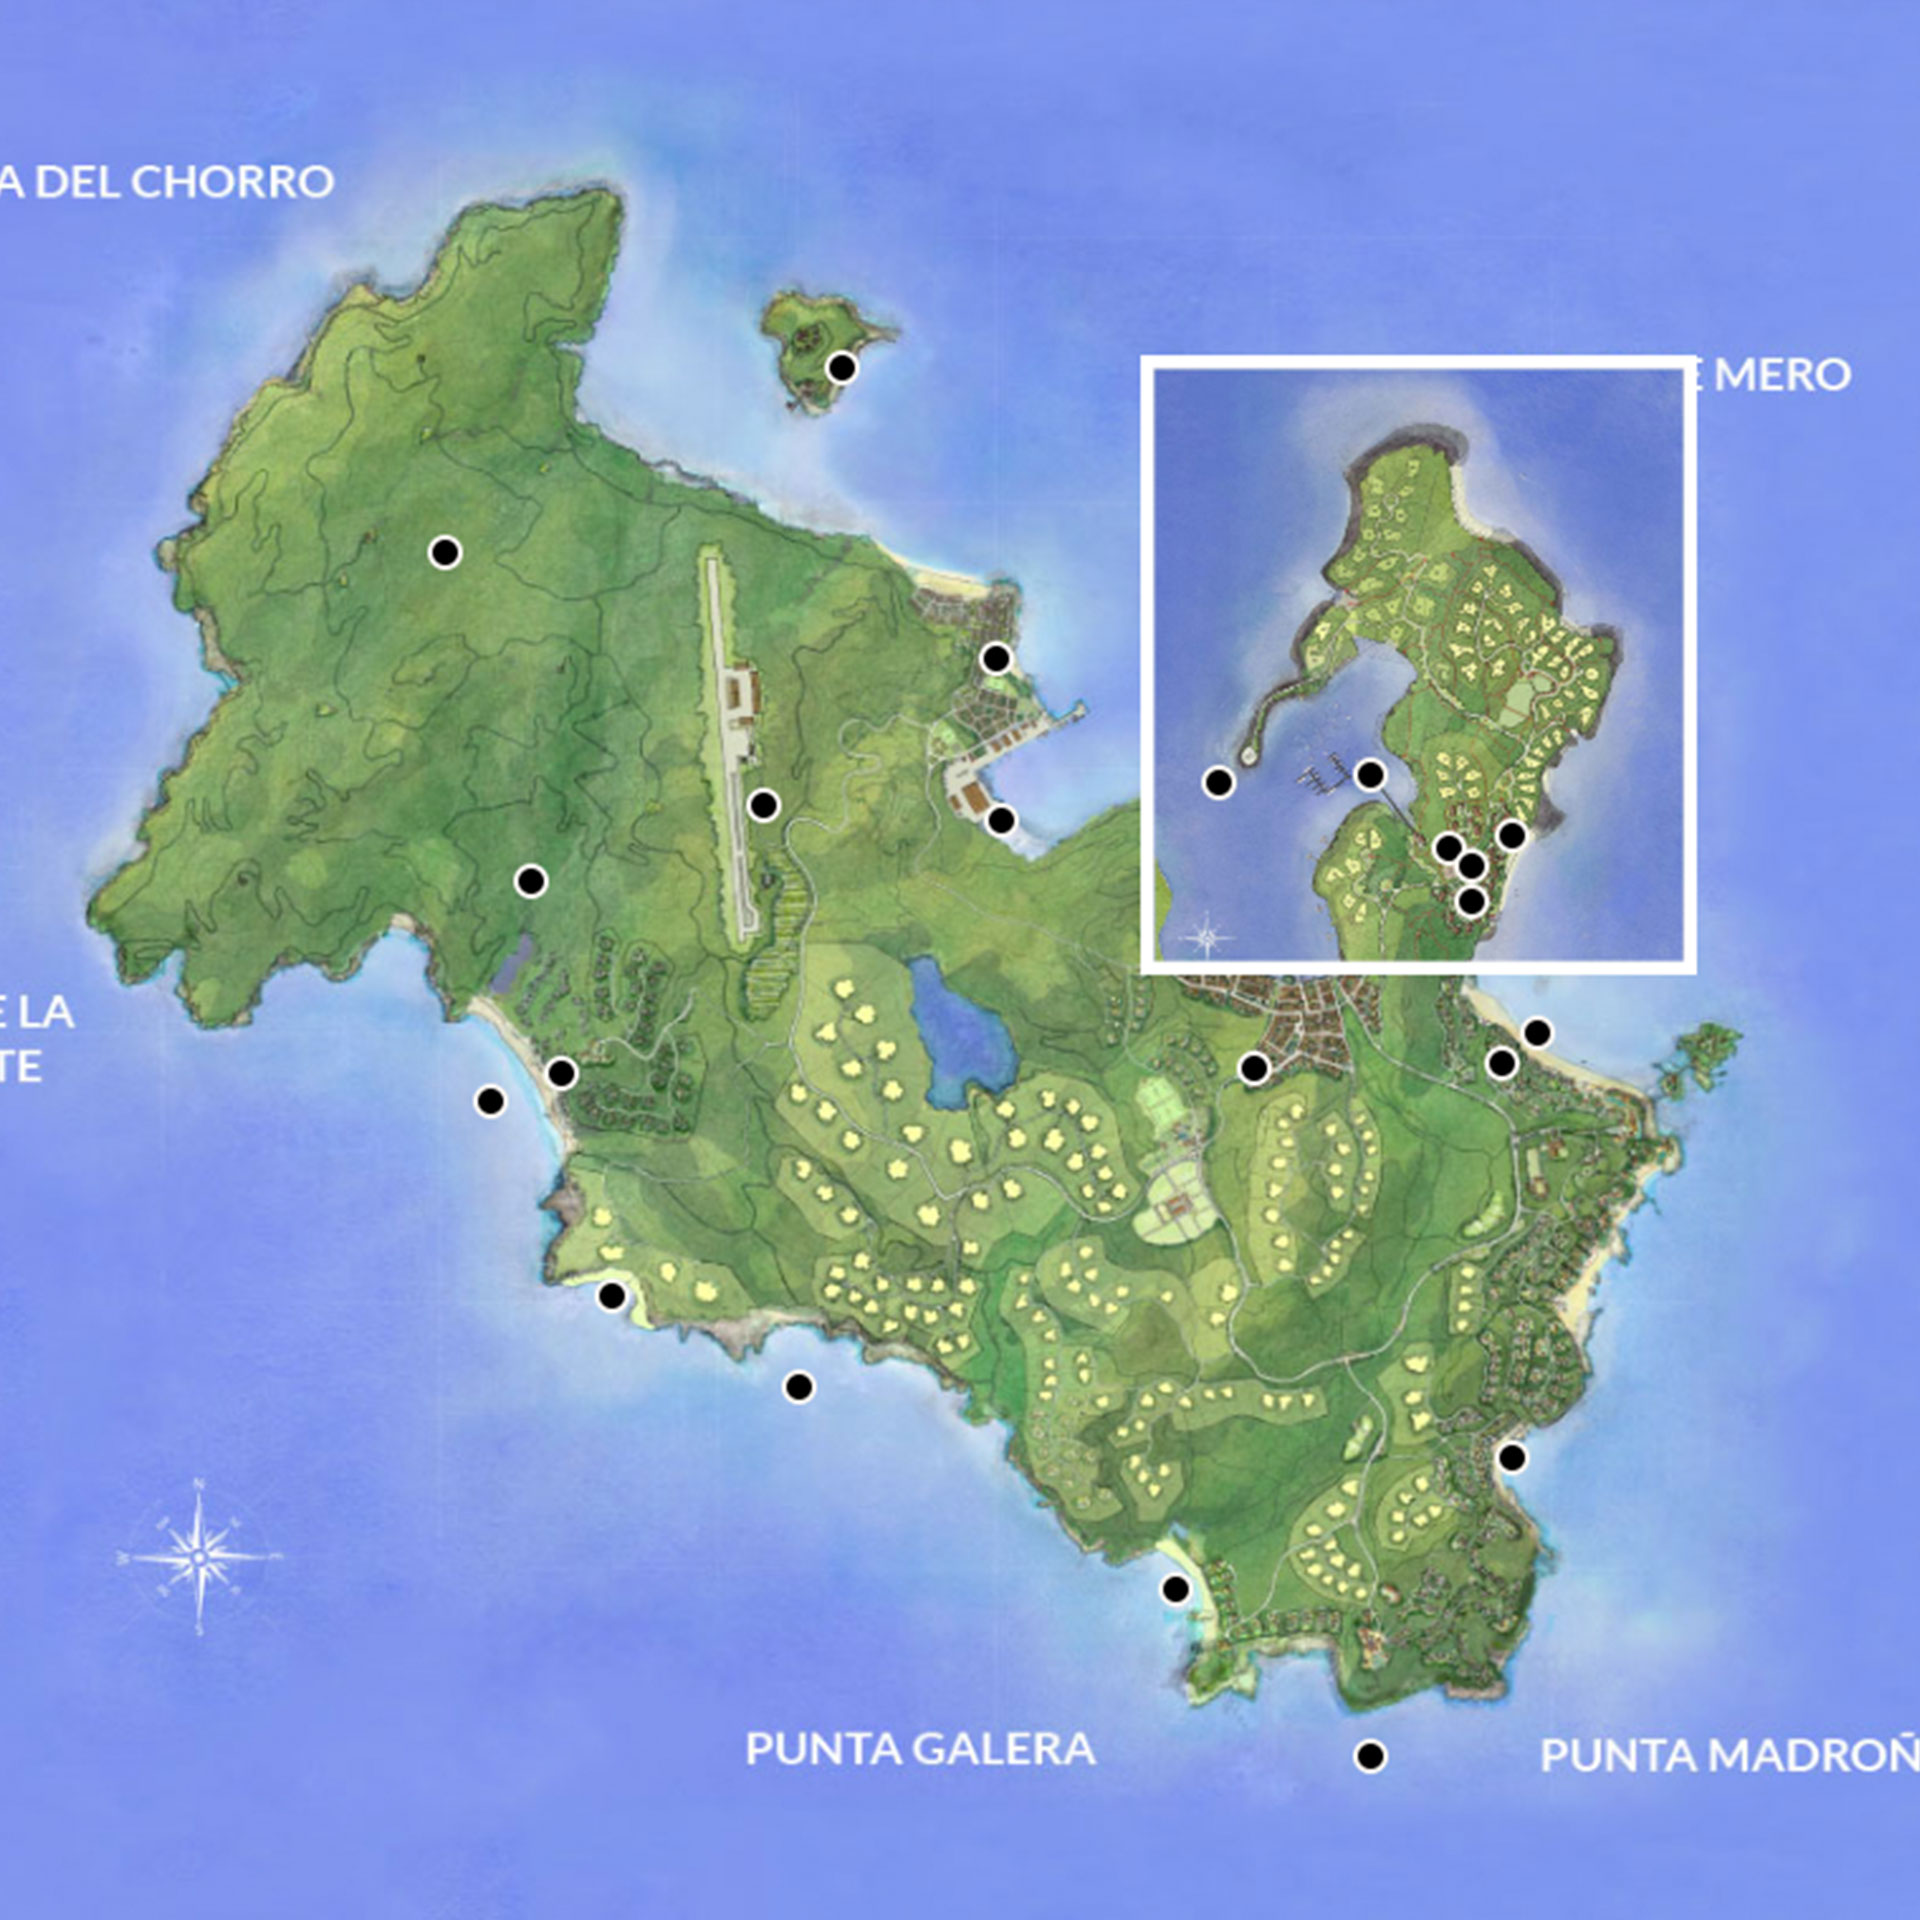 Google map overlaid with custom illustration | Luxury Resort marketing | Pearl Island